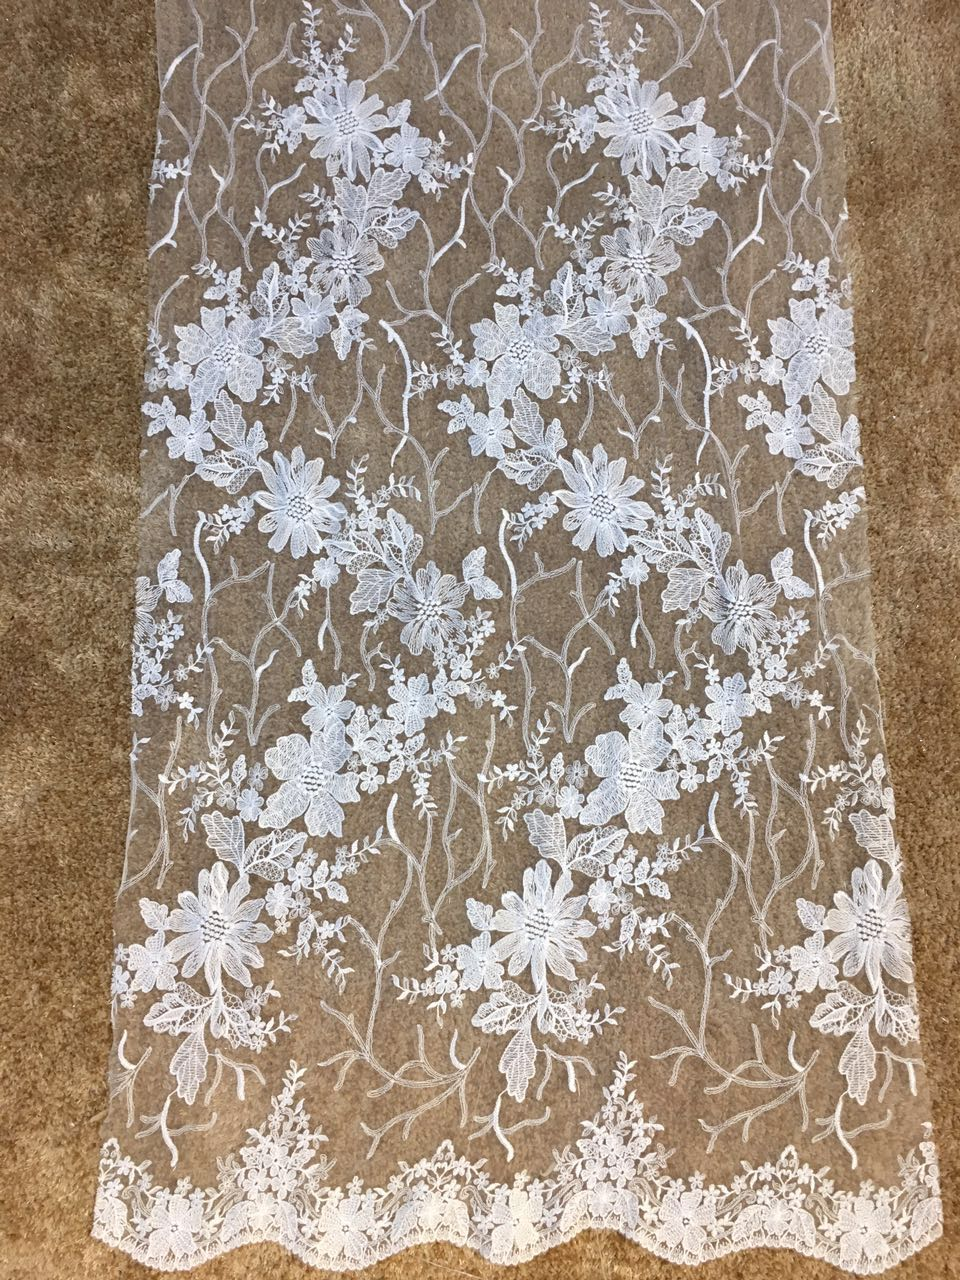 Hot French Nigerian  embroidery net lace,African tulle mesh lace fabric high quality for party wedding dress